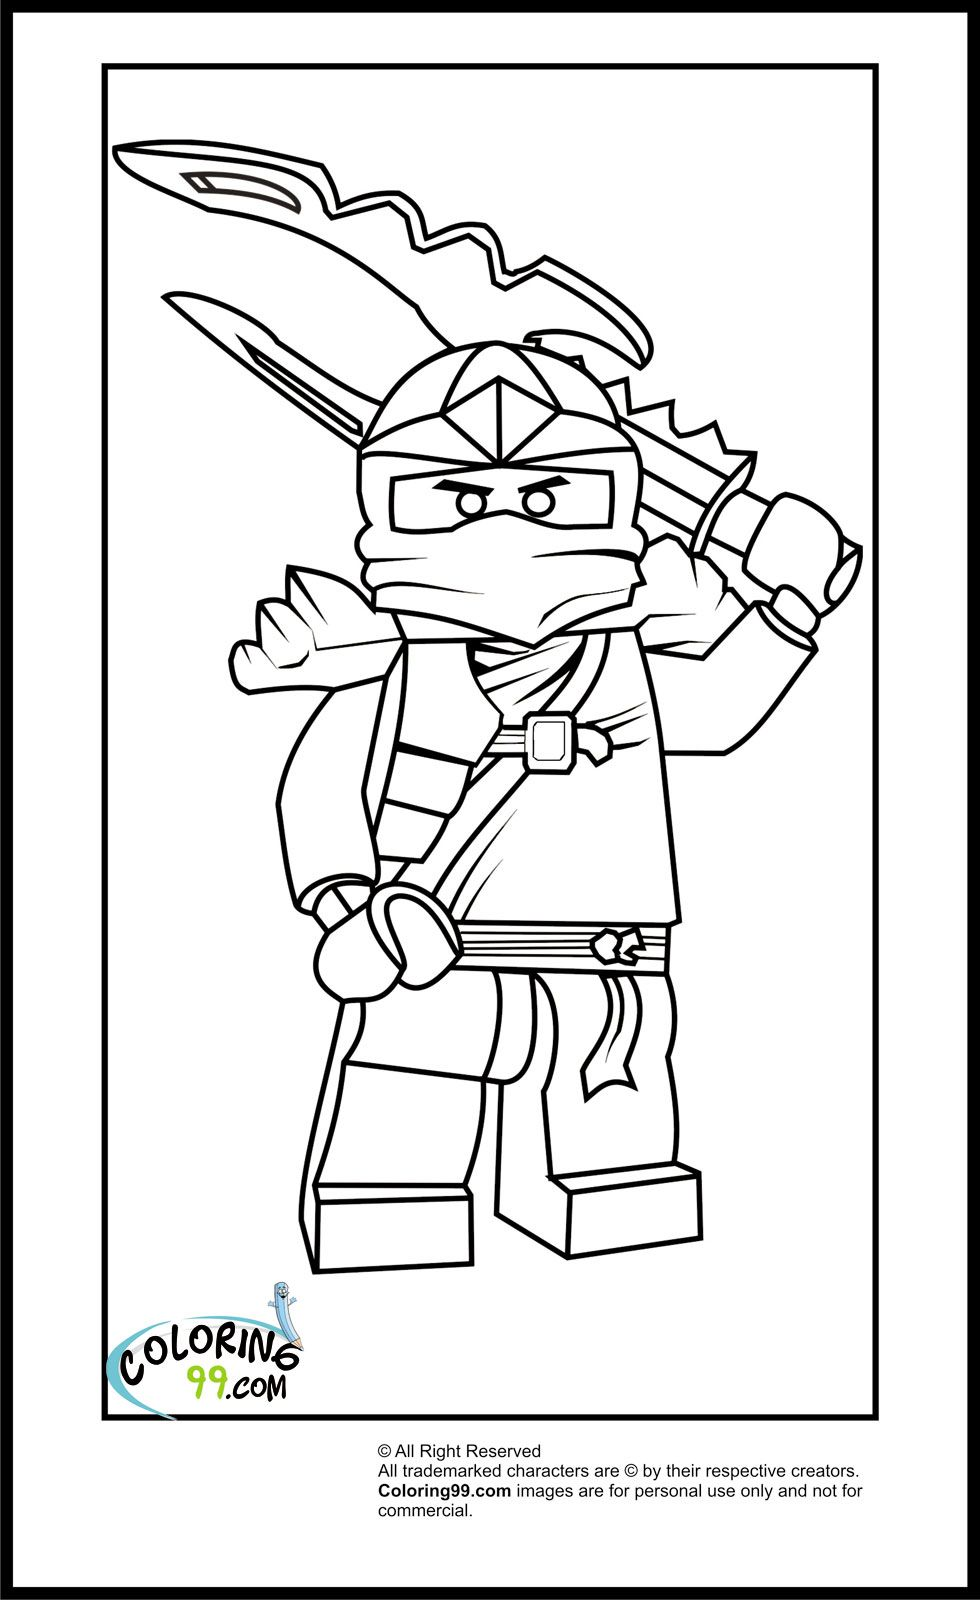 Lego Ninjago Coloring Pages   Free Printable Pictures Coloring .